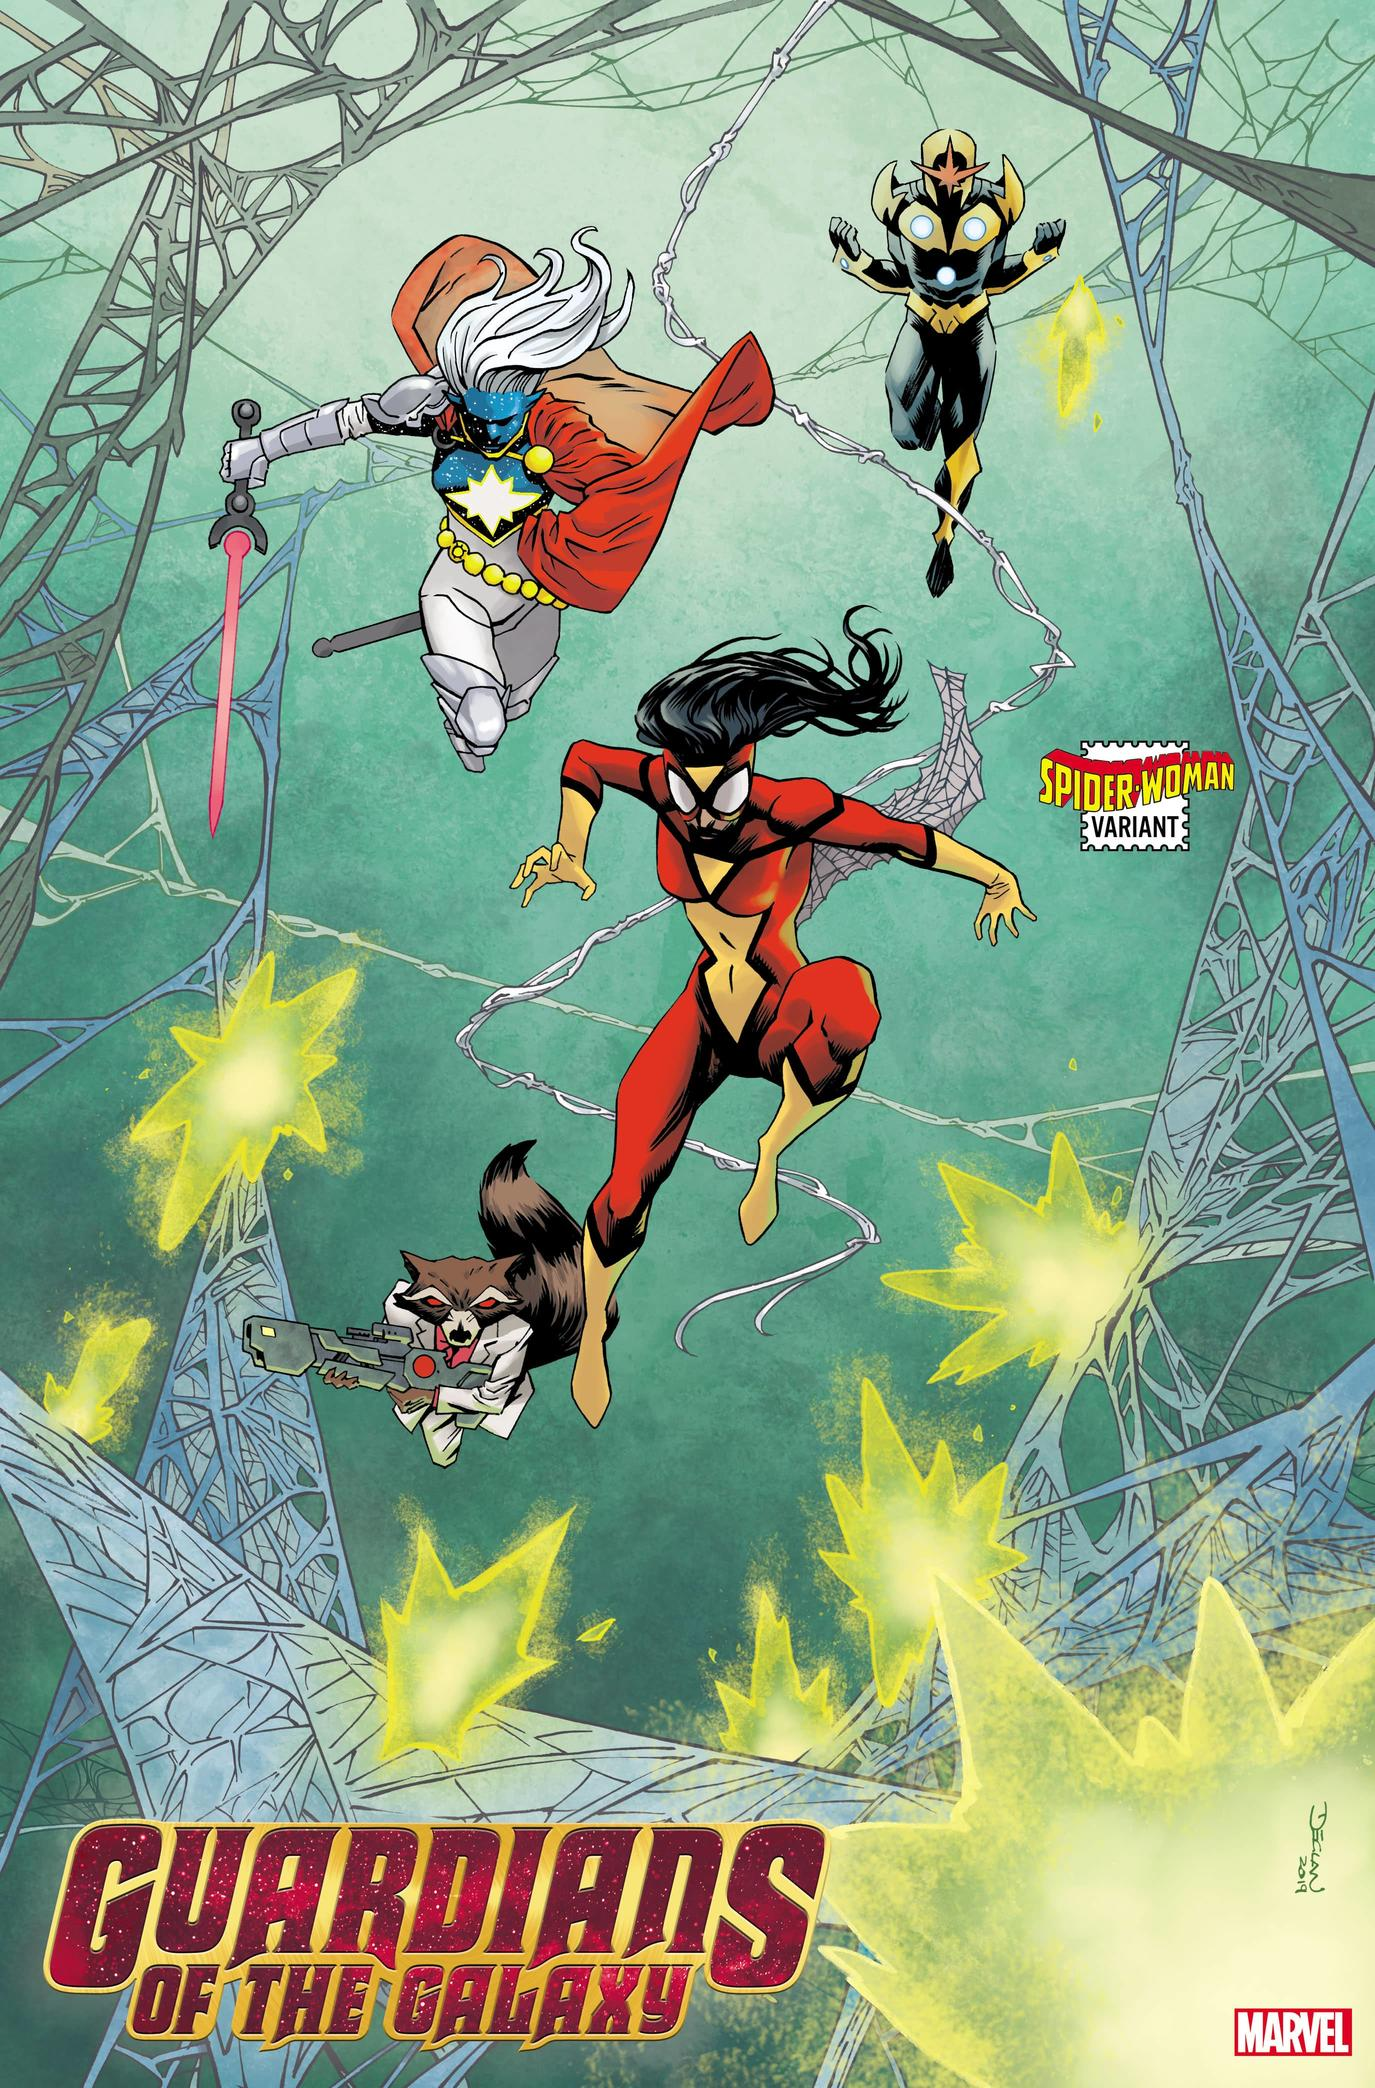 GUARDIANS OF THE GALAXY #3 SPIDER-WOMAN VARIANT by DECLAN SHALVEY